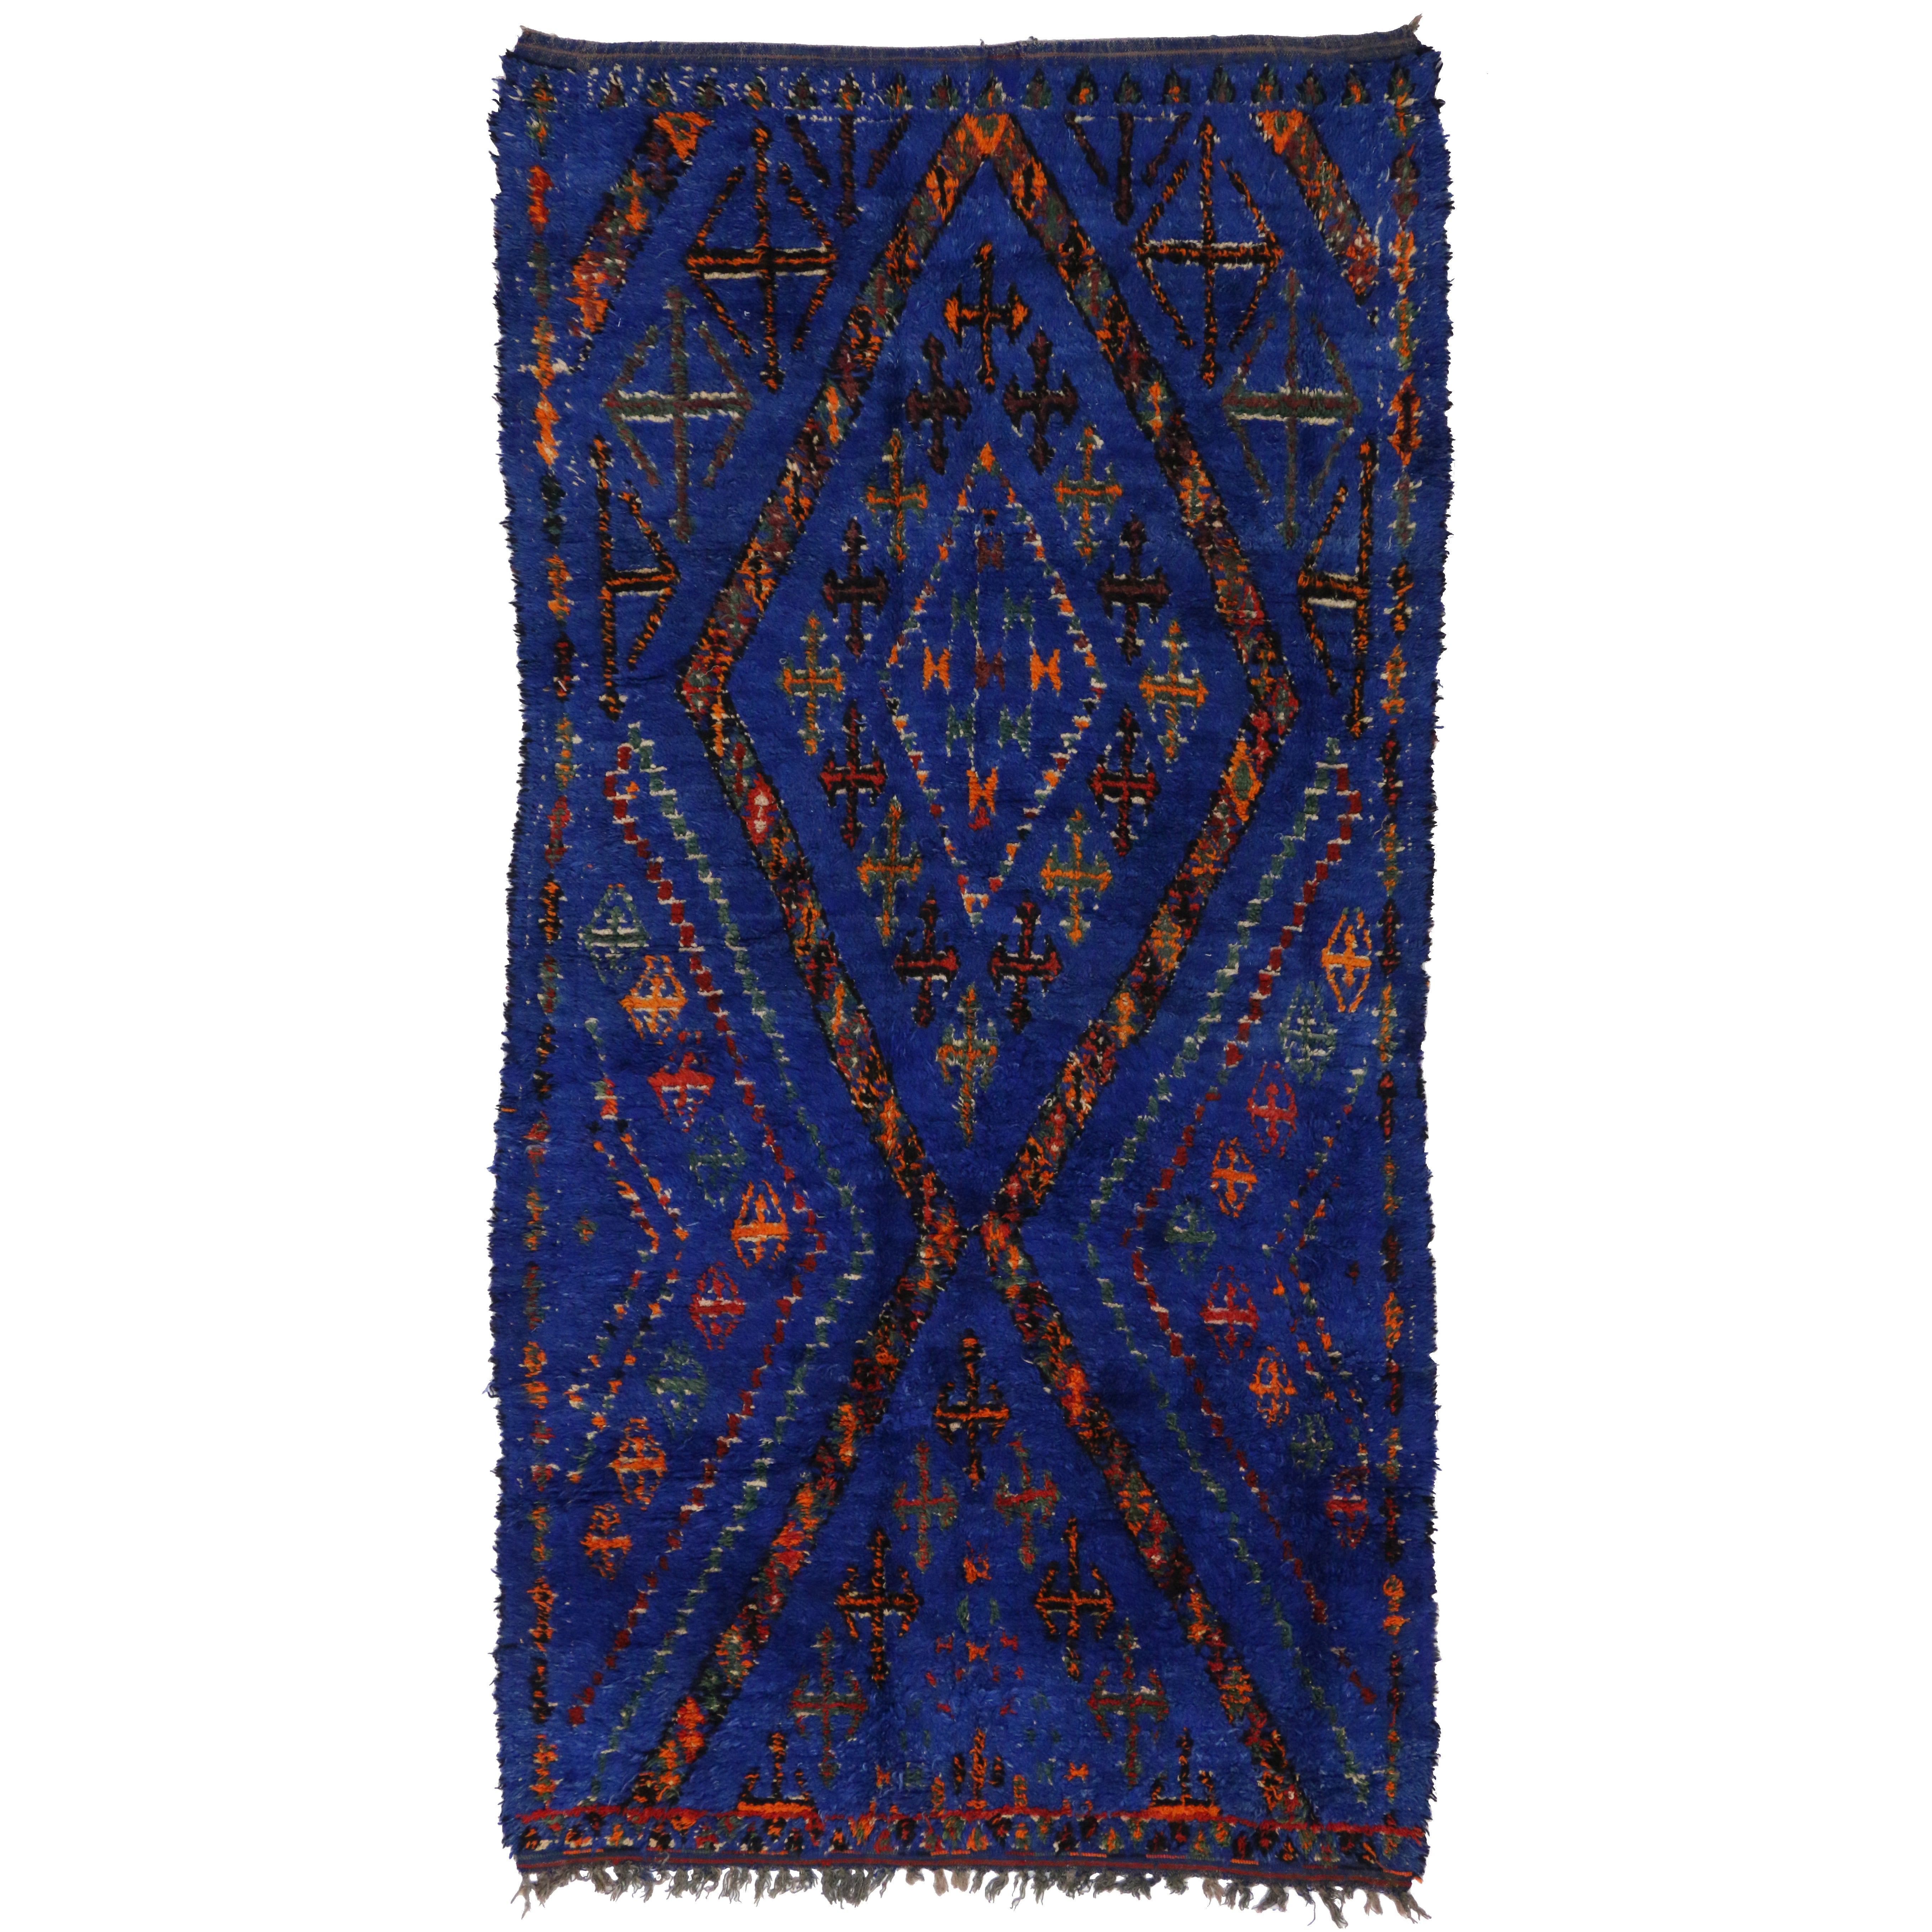 Cobalt Blue Moroccan Rug By Beni Ourain Rug With Tribal